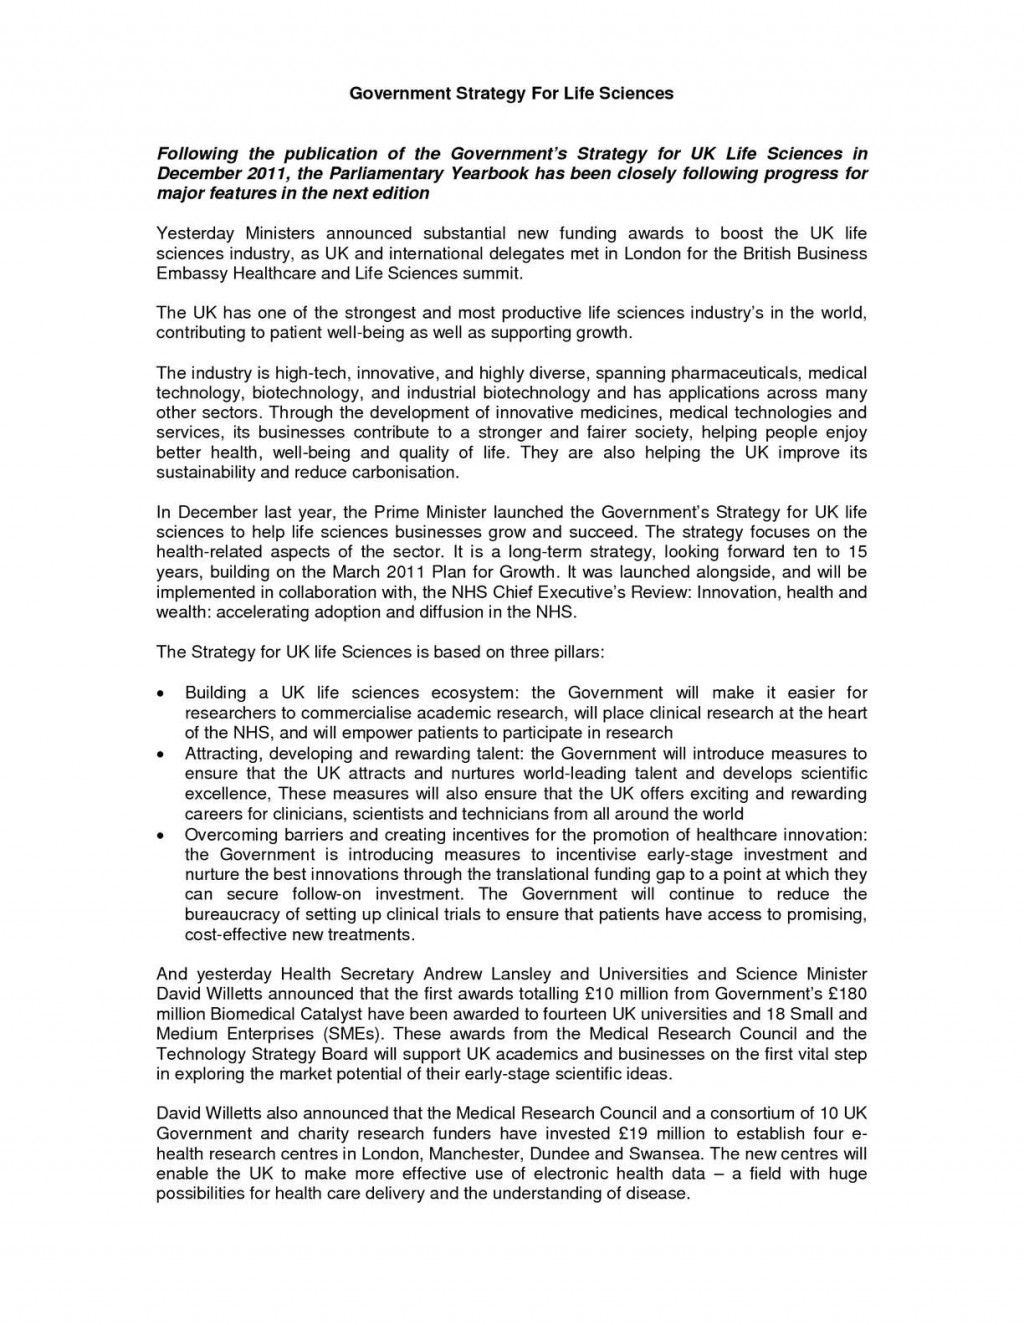 009 Change For The Better Essay P1 Beautiful How Can We World To Large